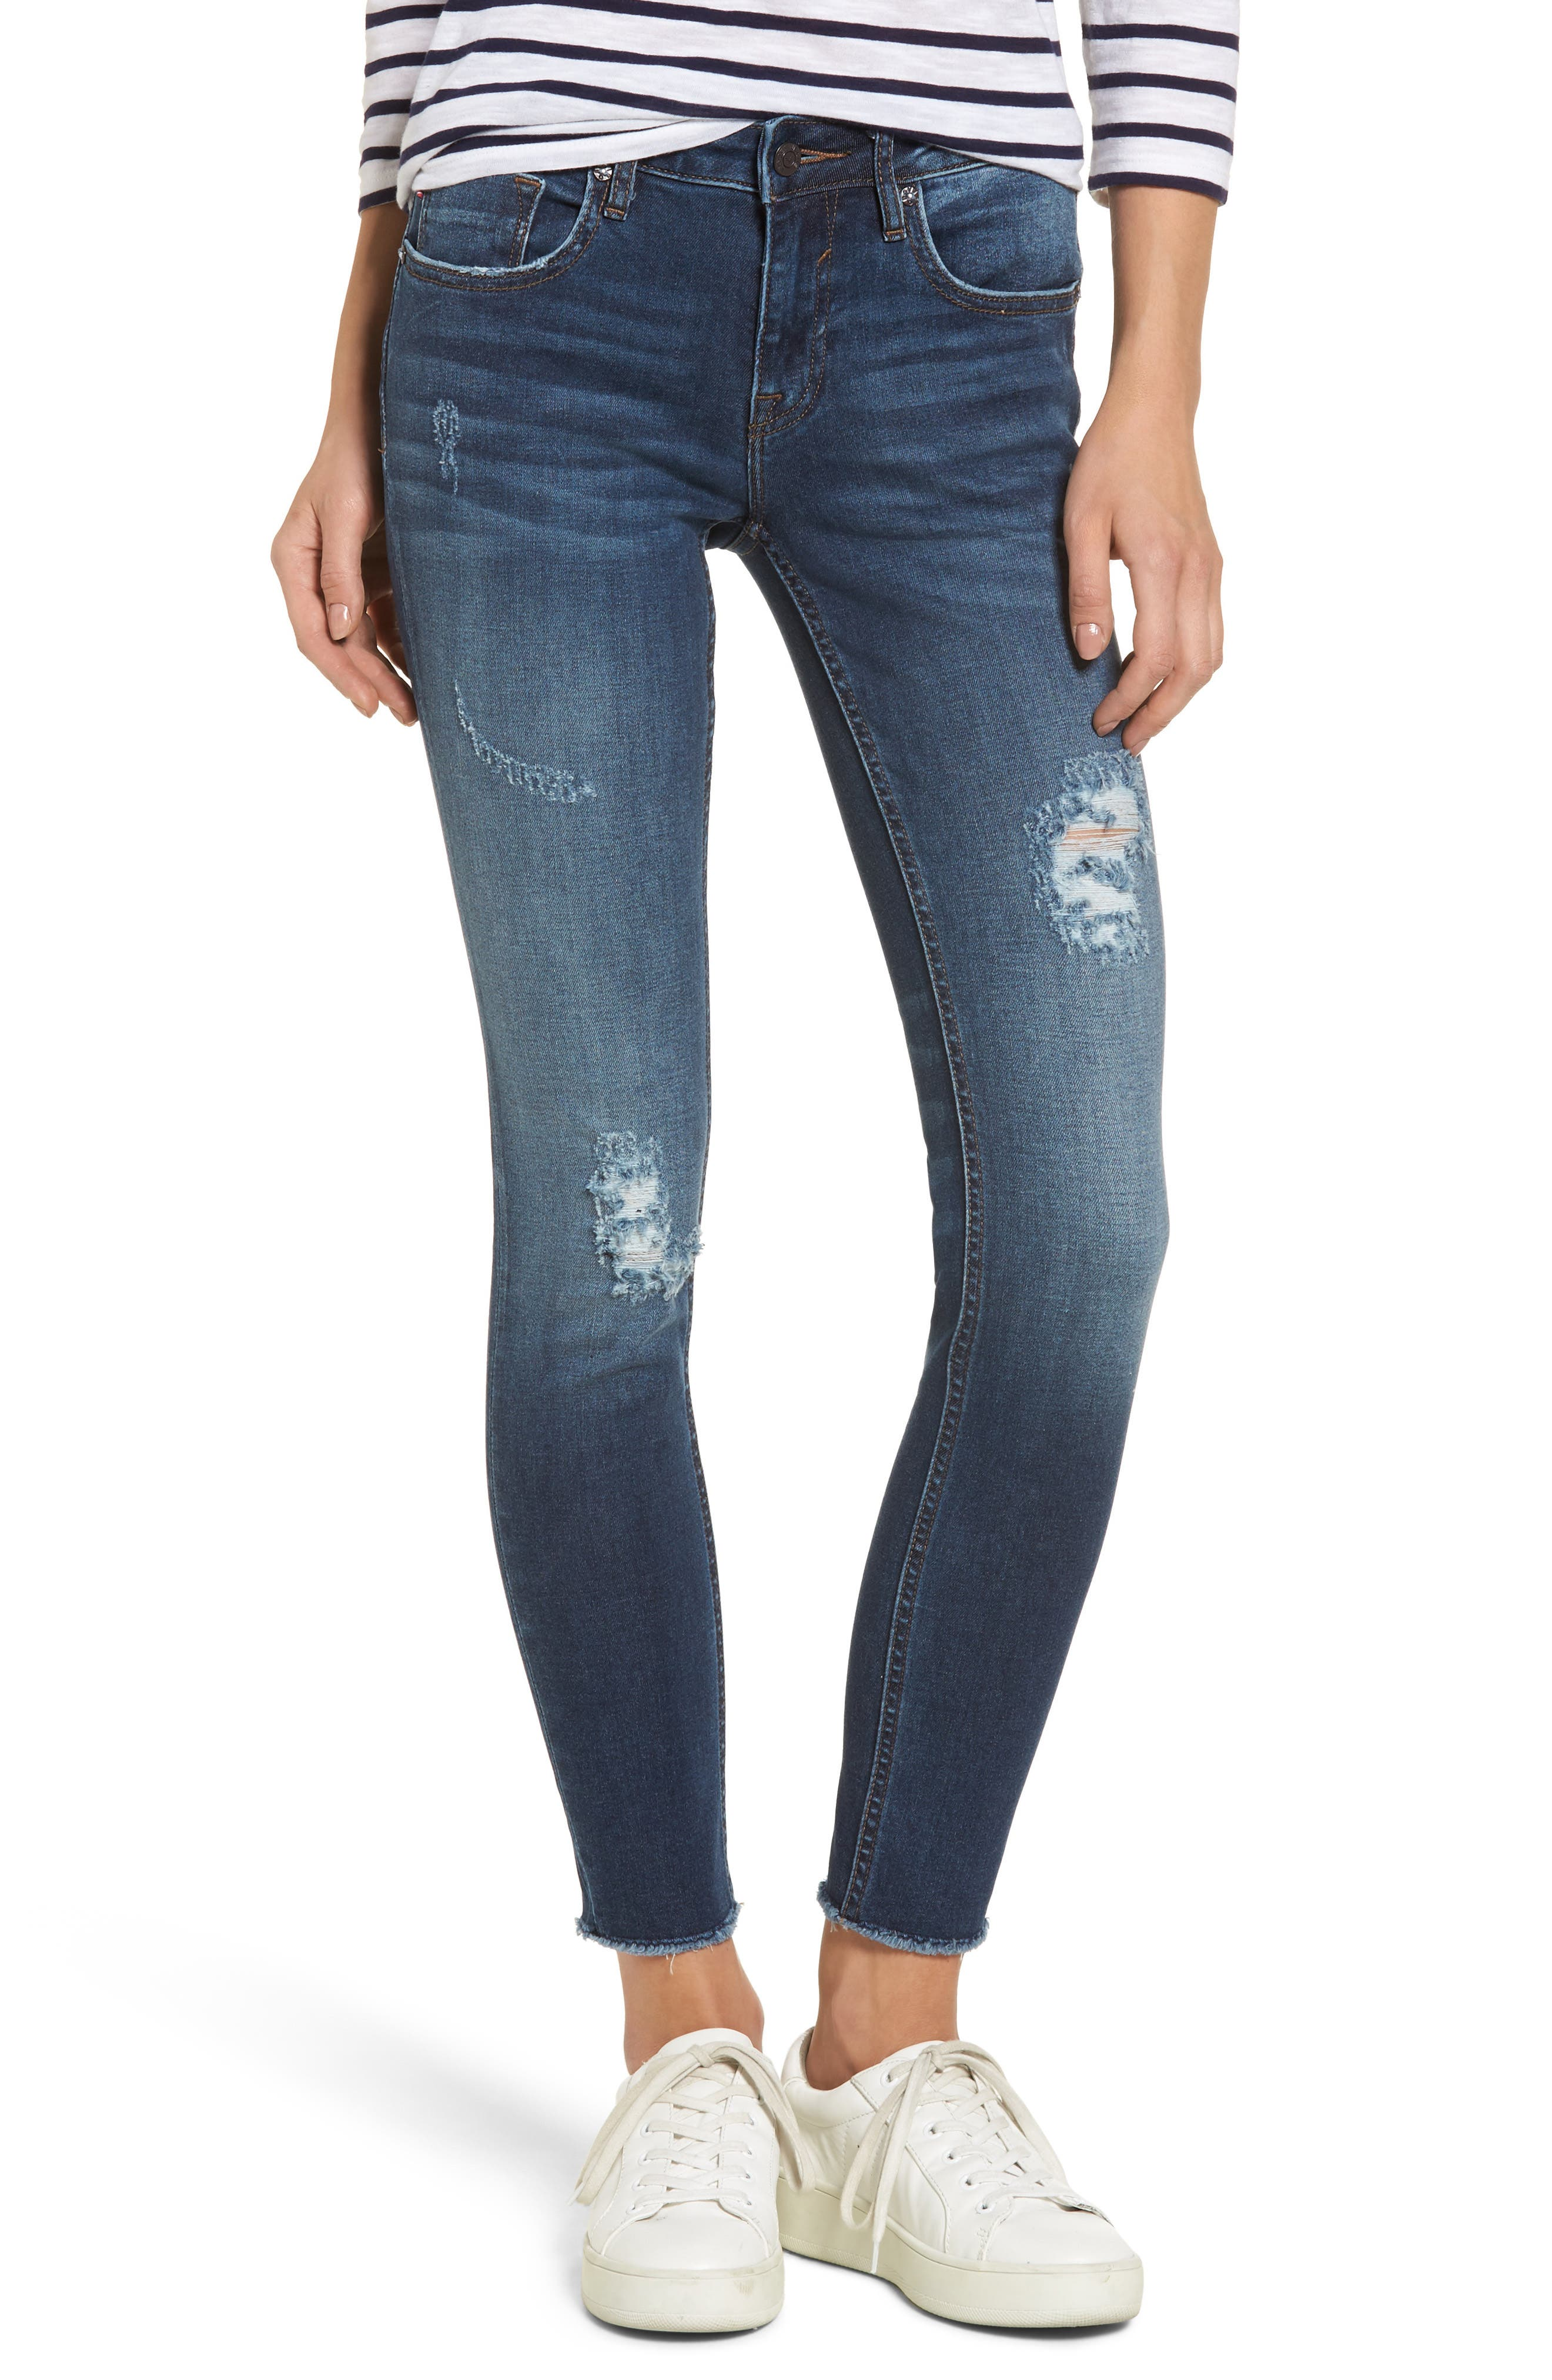 Jagger Distressed Skinny Jeans,                         Main,                         color, 403